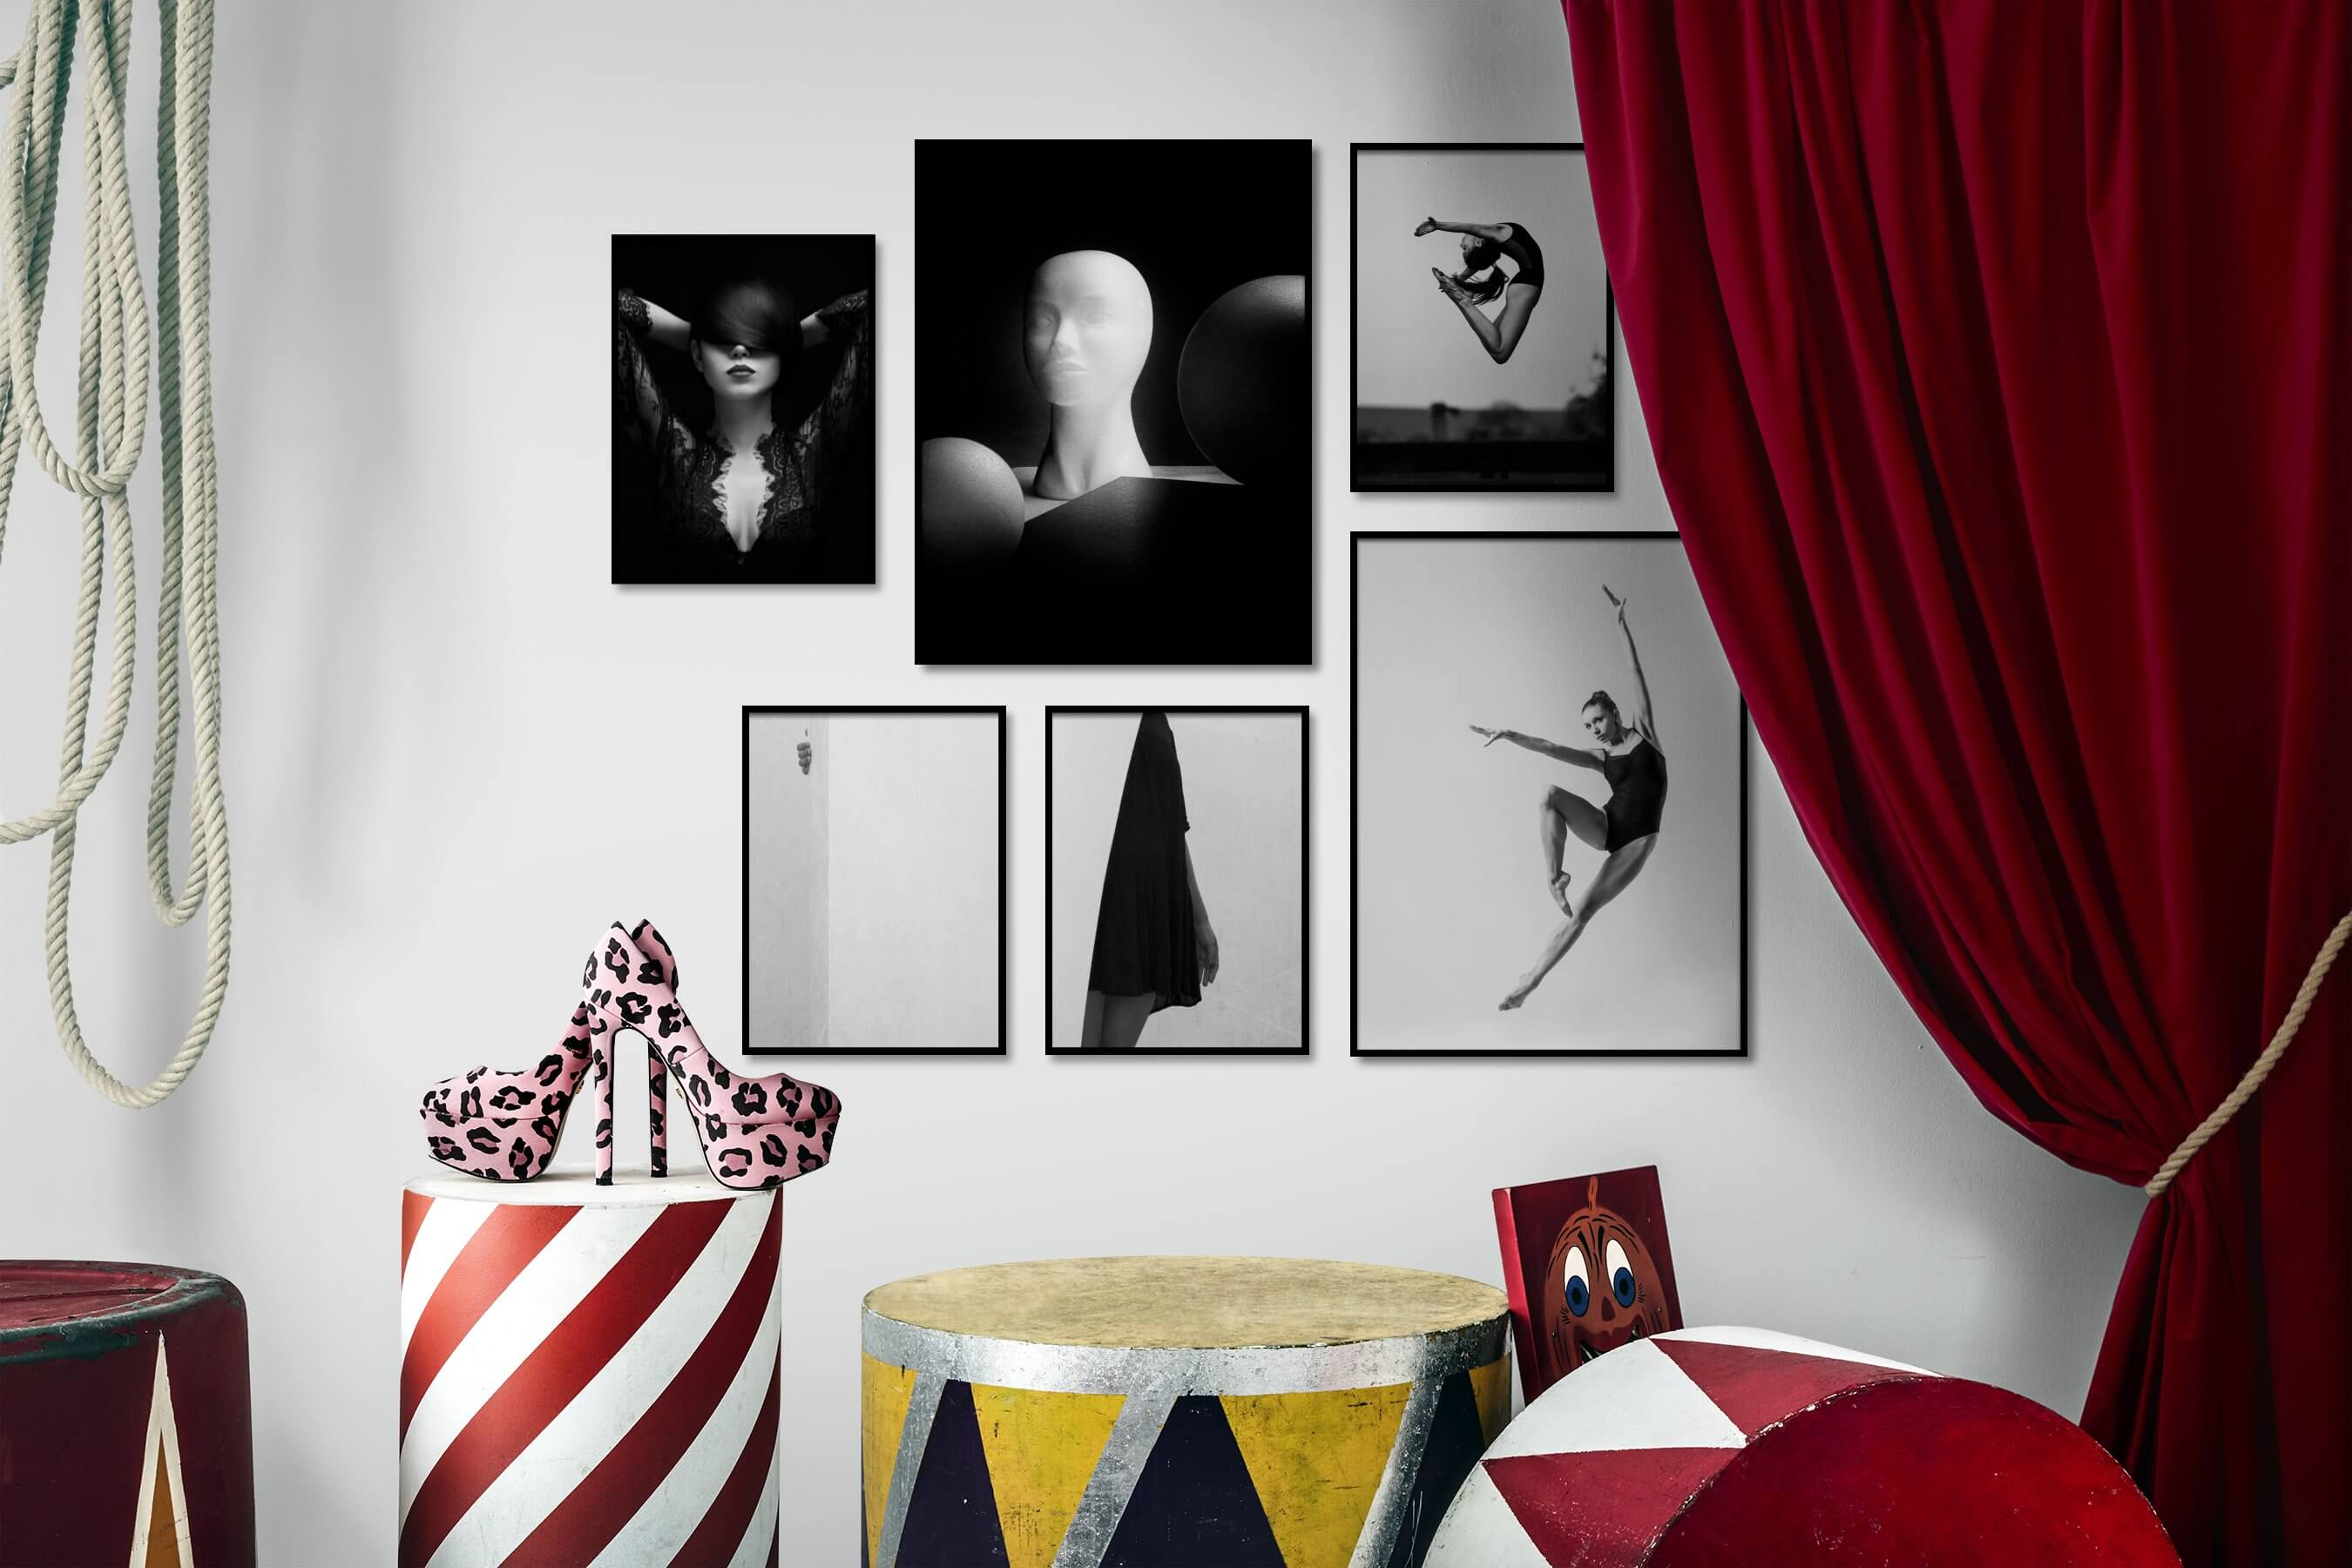 Gallery wall idea with six framed pictures arranged on a wall depicting Fashion & Beauty, Black & White, Dark Tones, Artsy, For the Moderate, For the Minimalist, Mindfulness, and Bright Tones